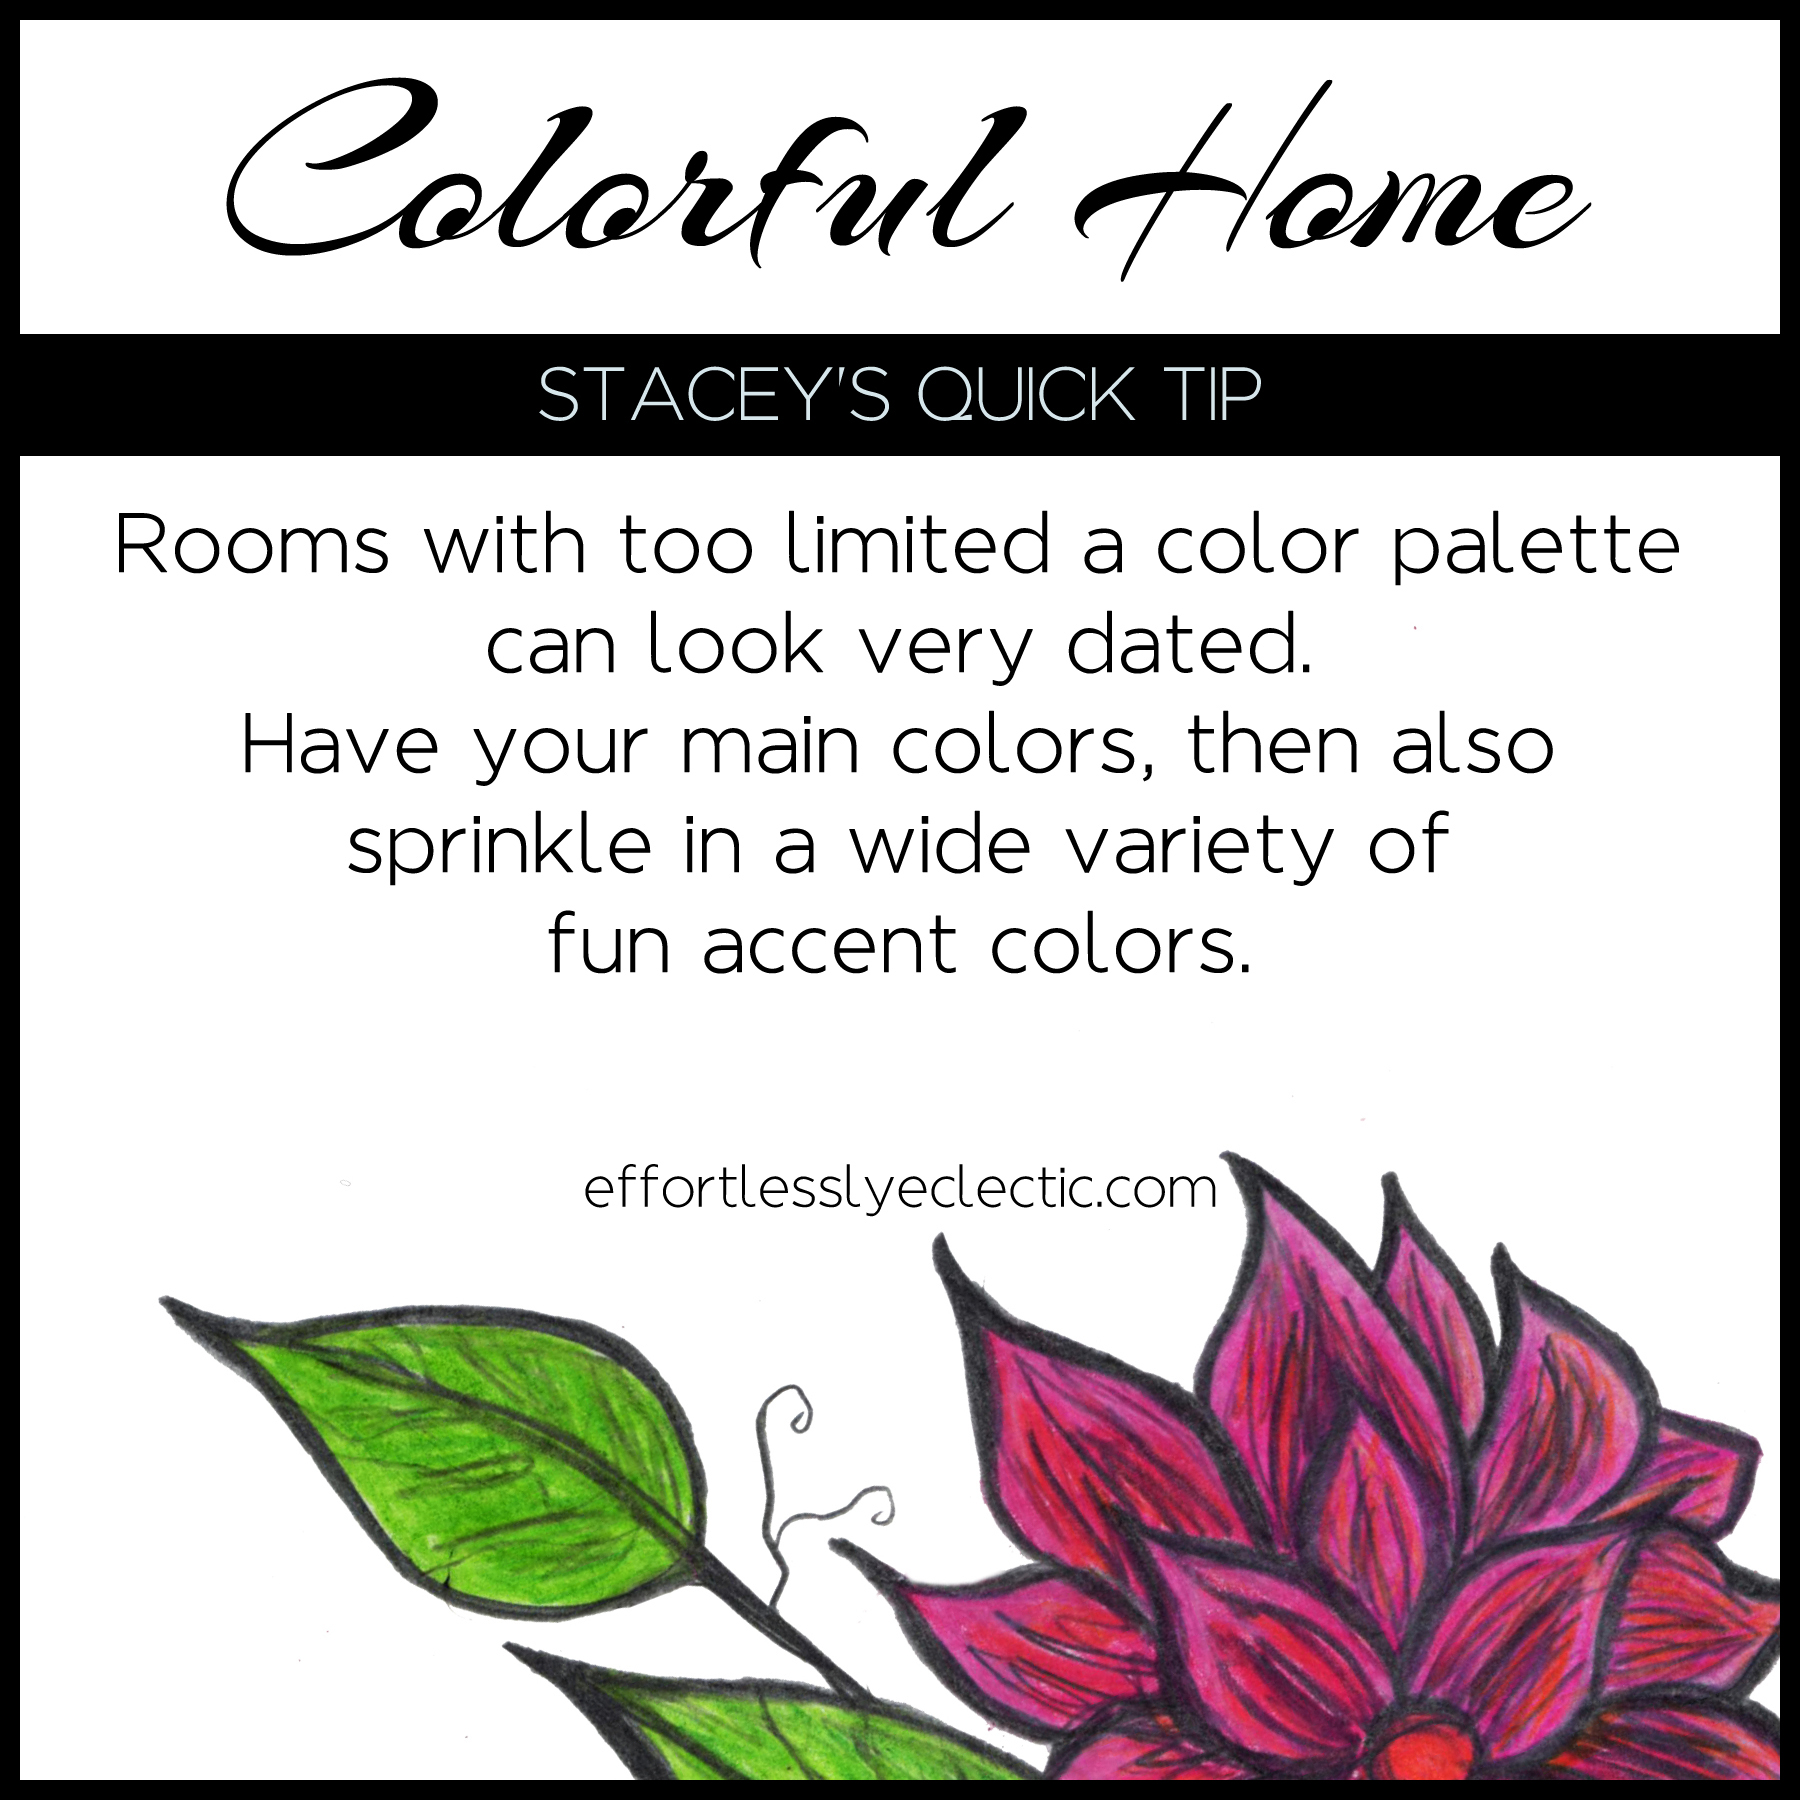 Colorful Home - A home decorating tip about how to add color to your home